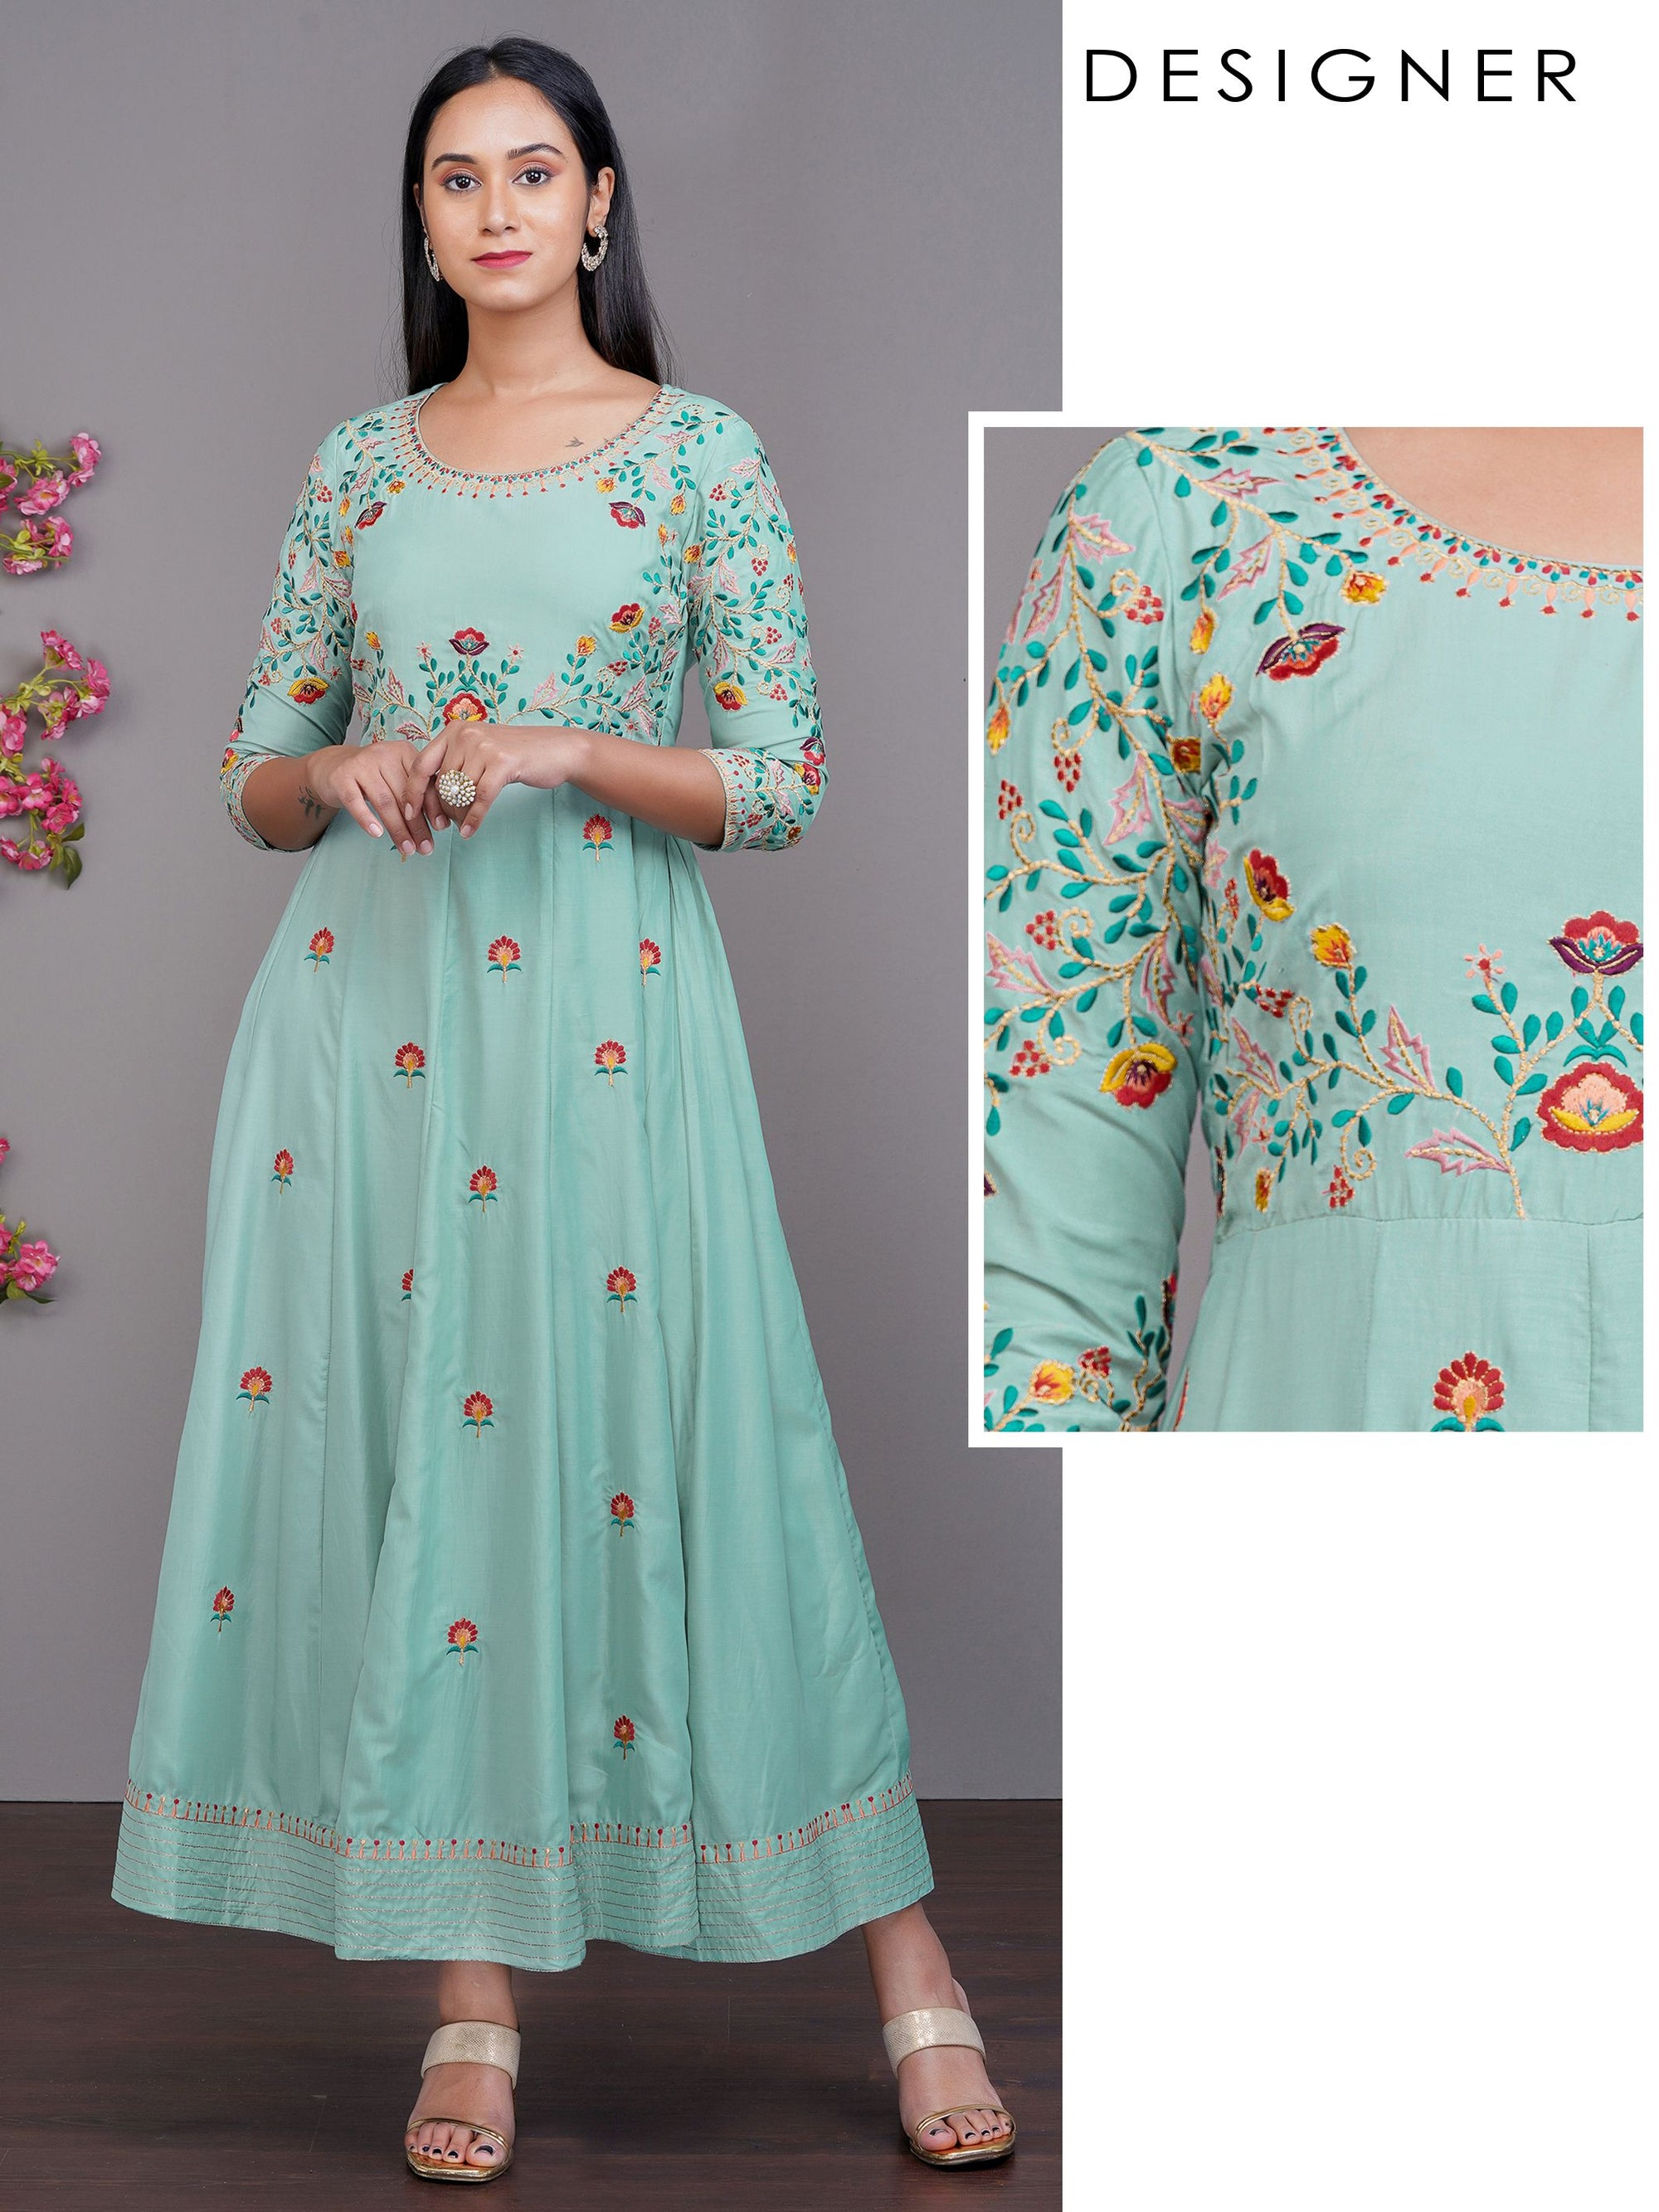 Floral & Chain Embroidered Multi Panel Designer Maxi – Cyan